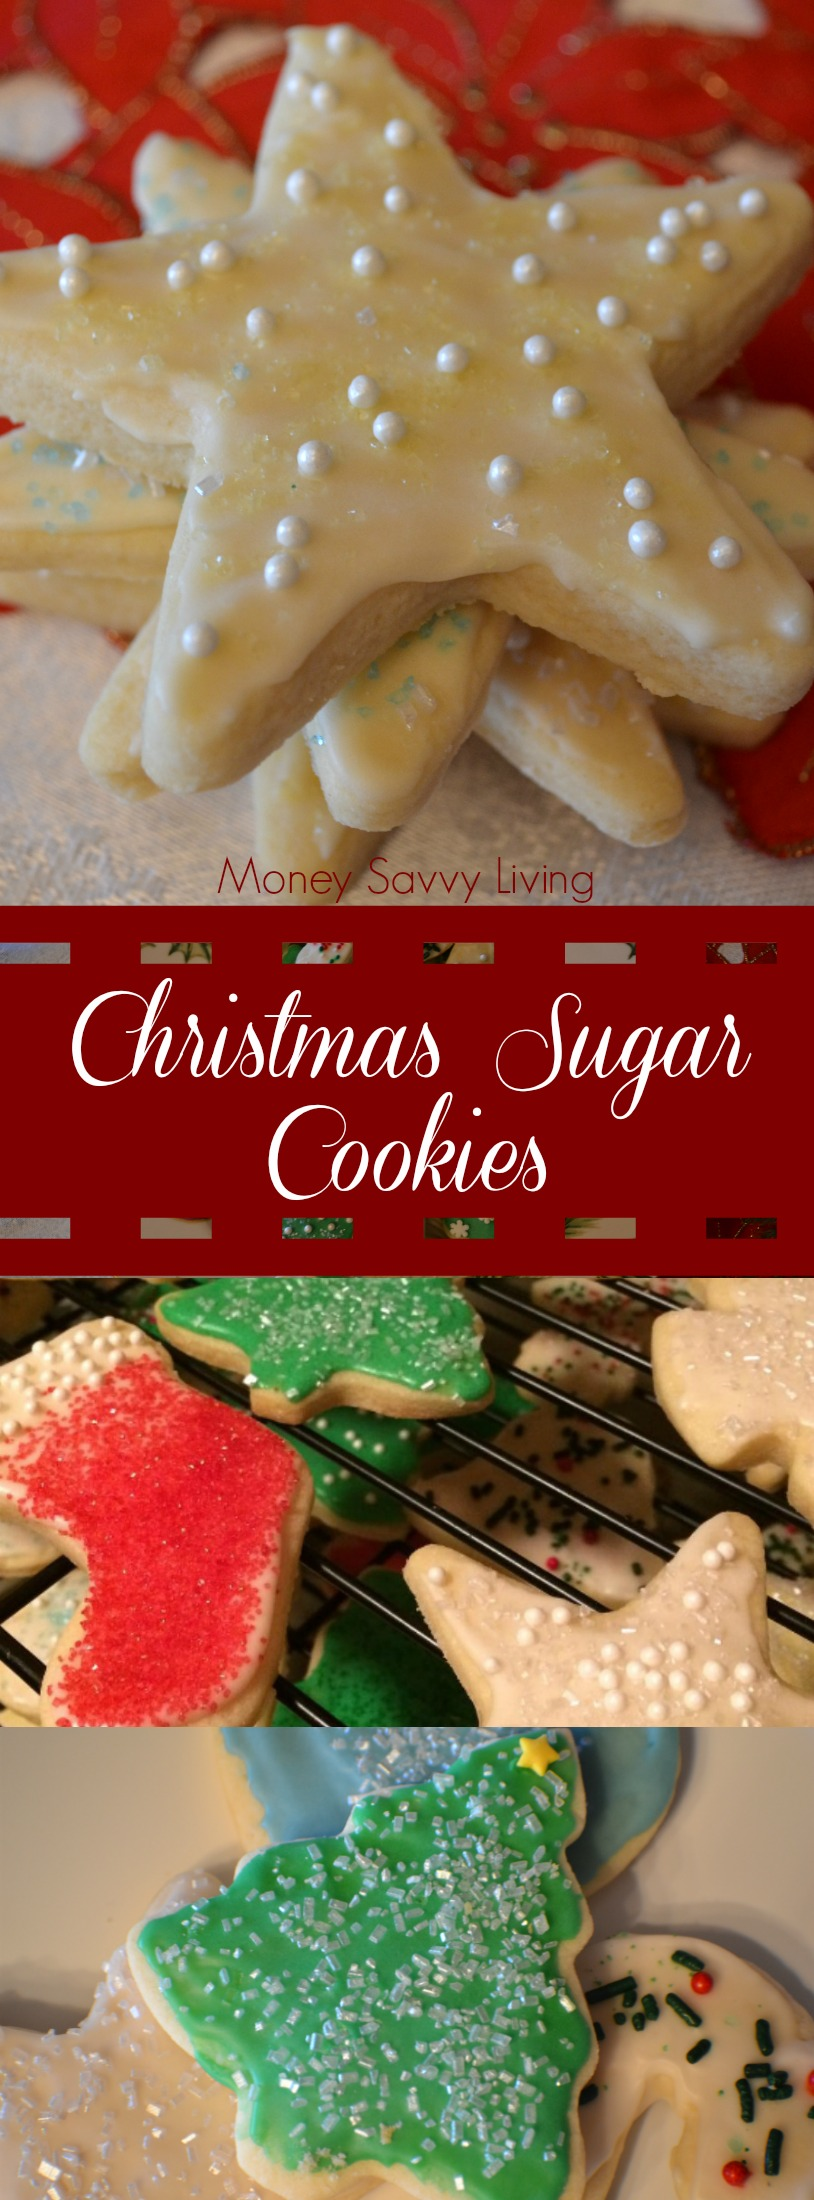 Your family is going to love this recipe for classic Christmas cut-out sugar cookies!  #cookies #cookierecipe #christmascookies #sugarcookies #cutoutcookies